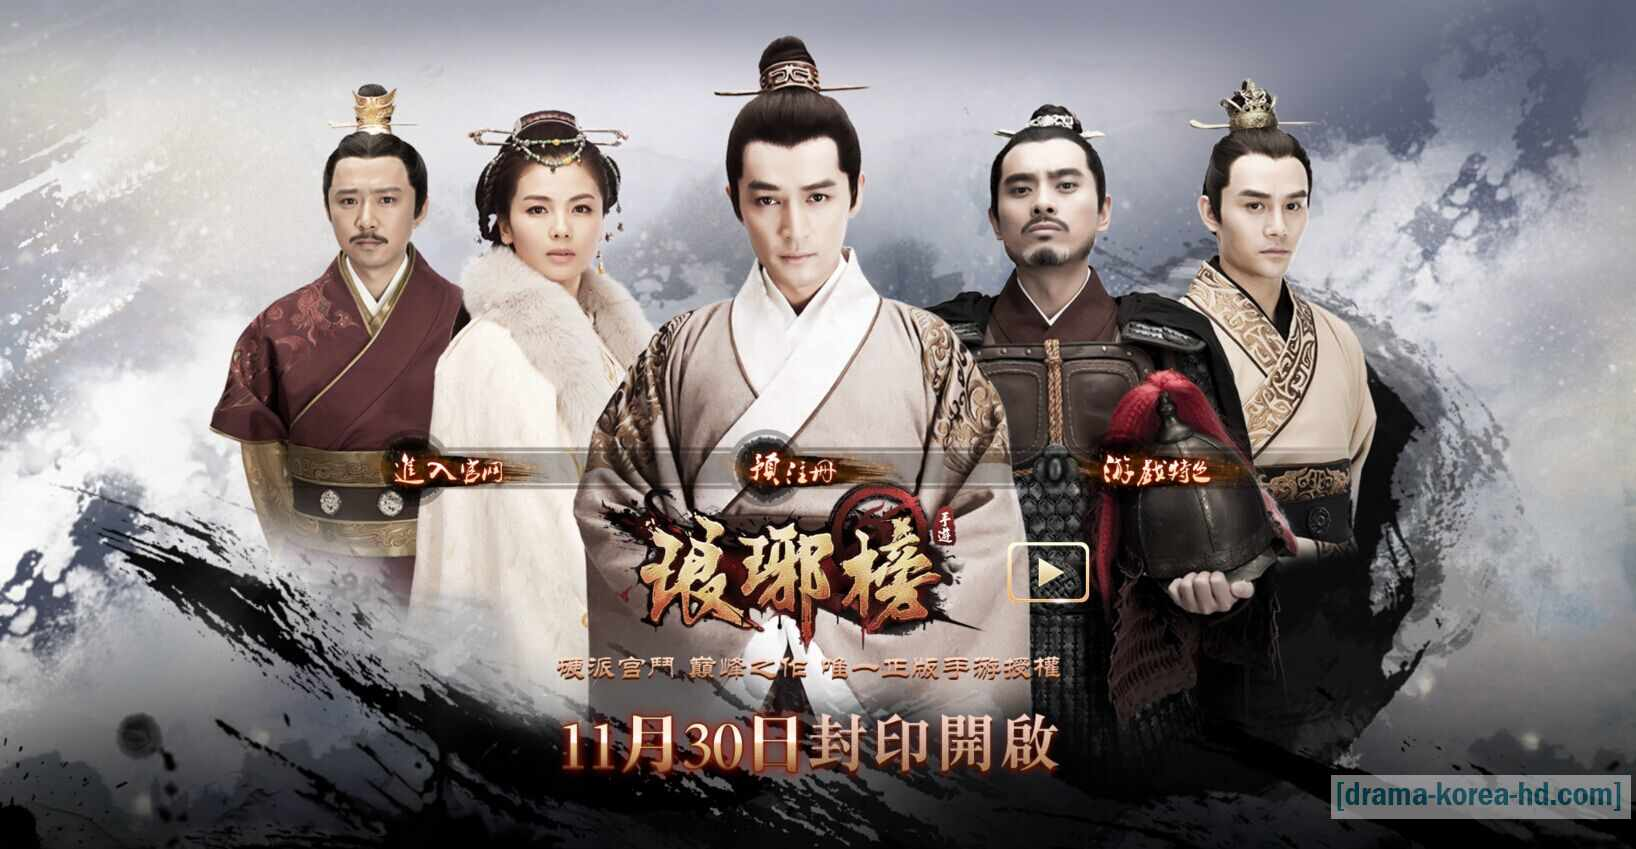 Nirvana in Fire drama korea